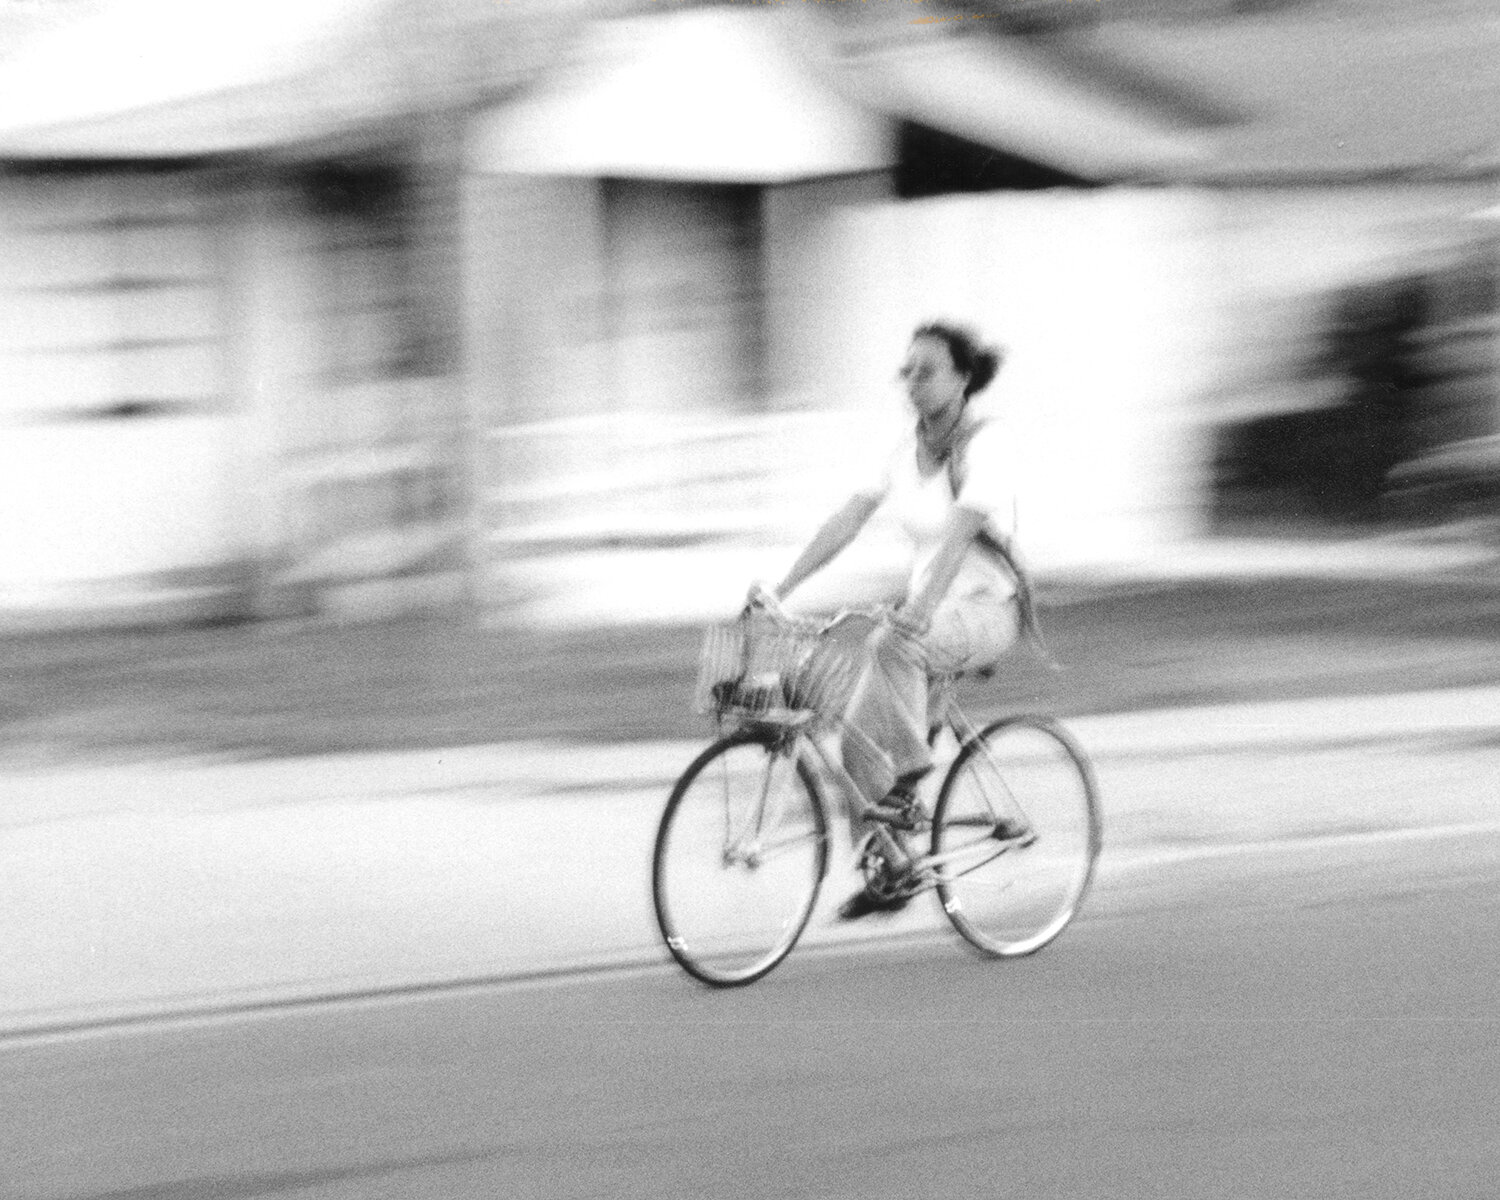 laura_farrell_photography_helen_on_wheels_black_and_white_bicycle_pan.jpg